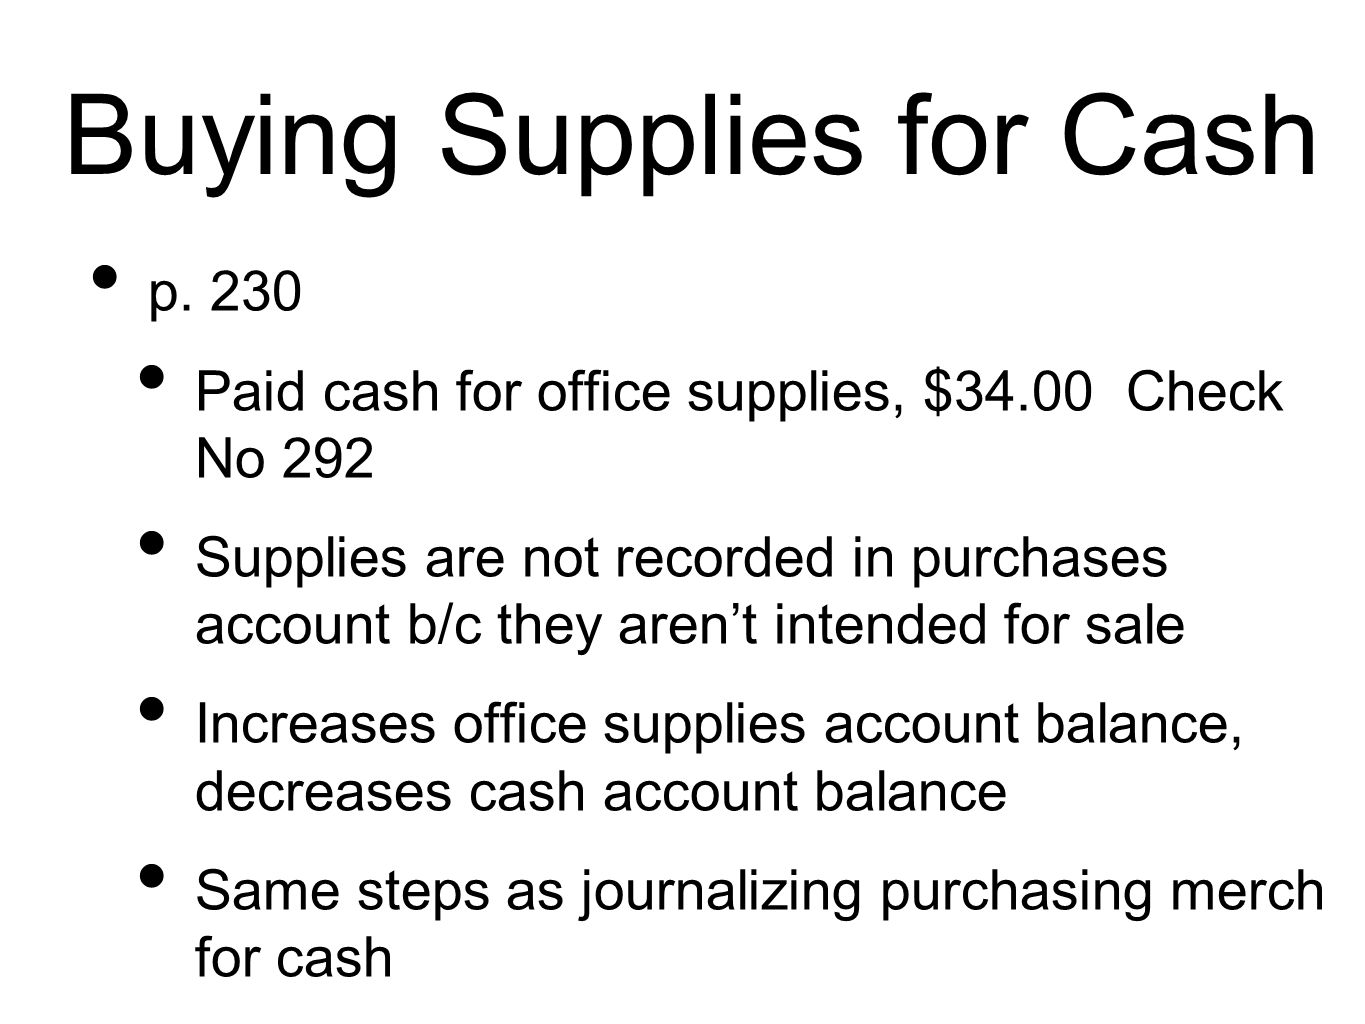 Buying Supplies for Cash p. 230 Paid cash for office supplies, $34.00 Check No 292 Supplies are not recorded in purchases account b/c they aren't inte